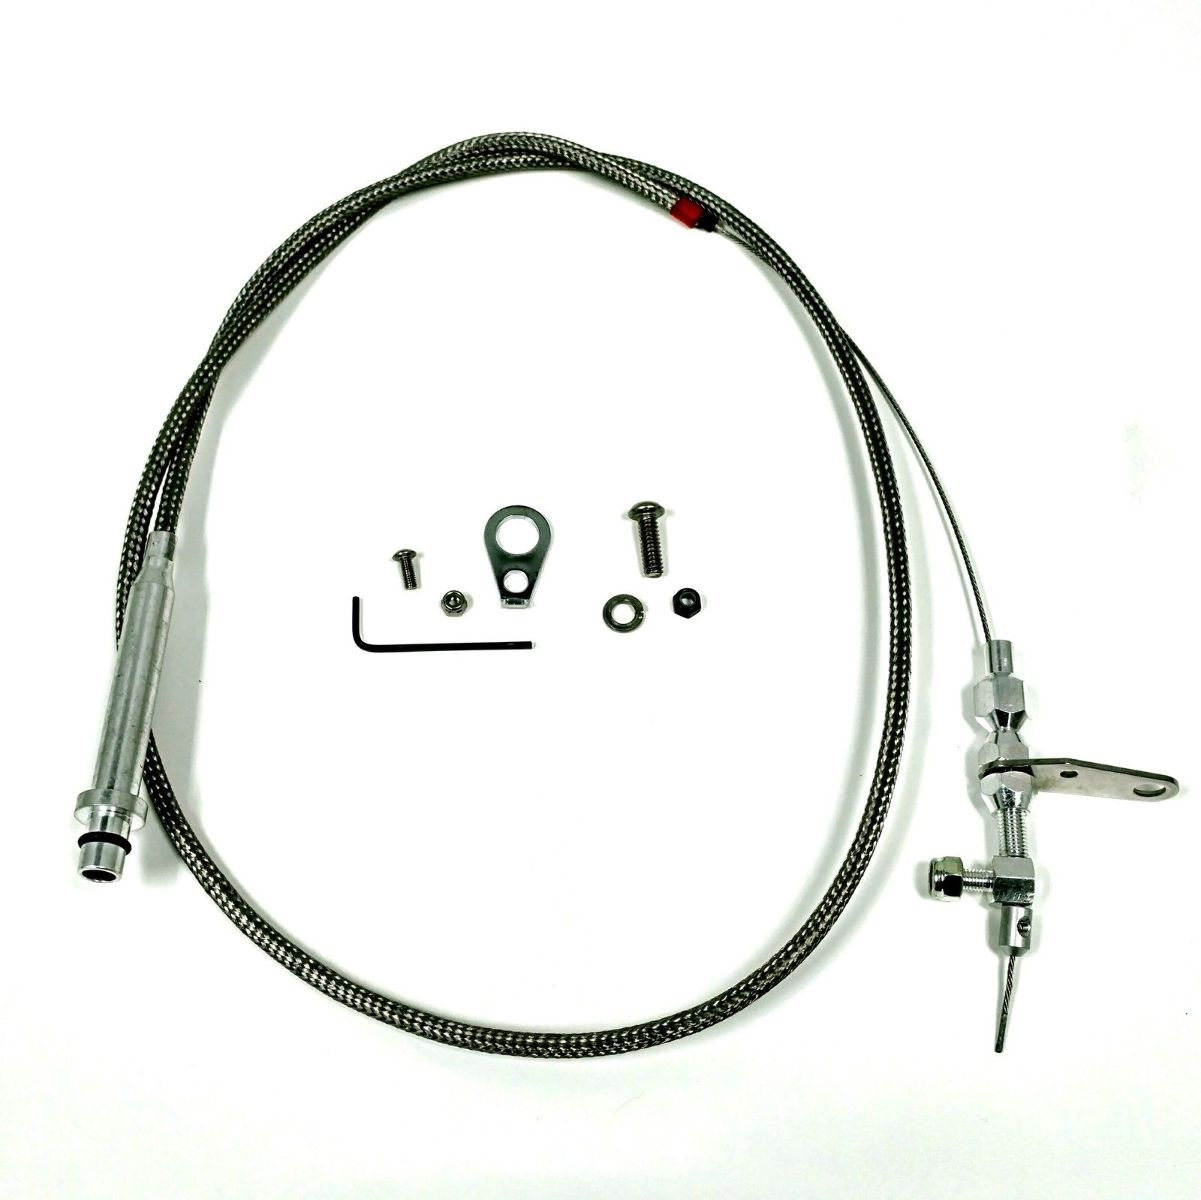 Th350 57 Braided Stainless Steel Kick Down Cable Sbc Bbc